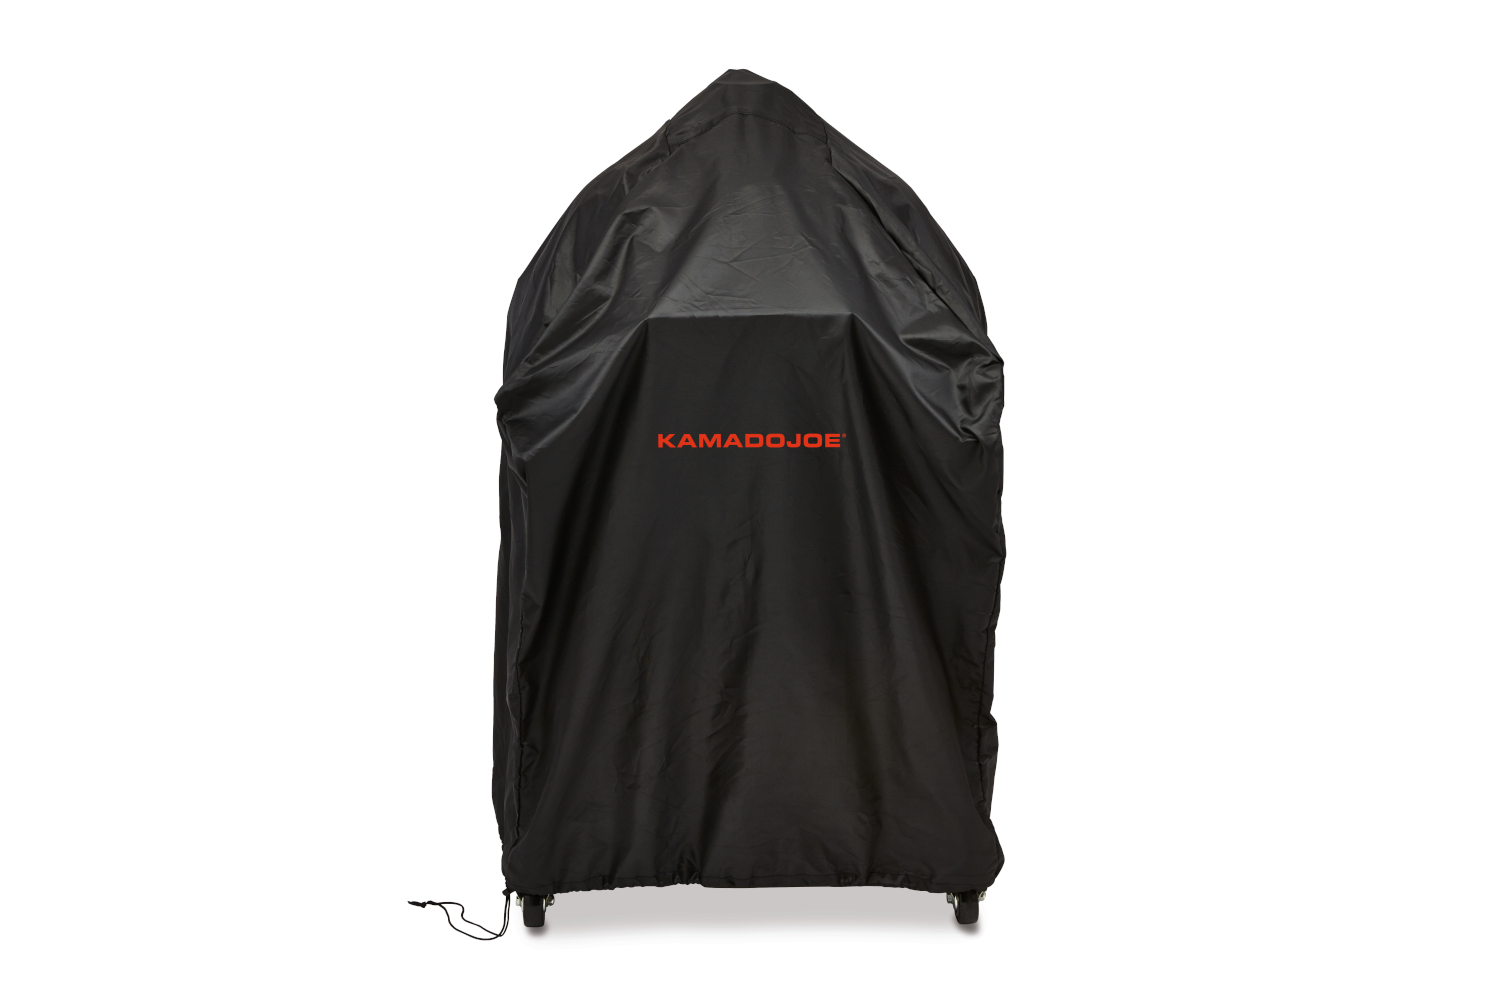 Kamado Joe Grill Cover - Big Joe